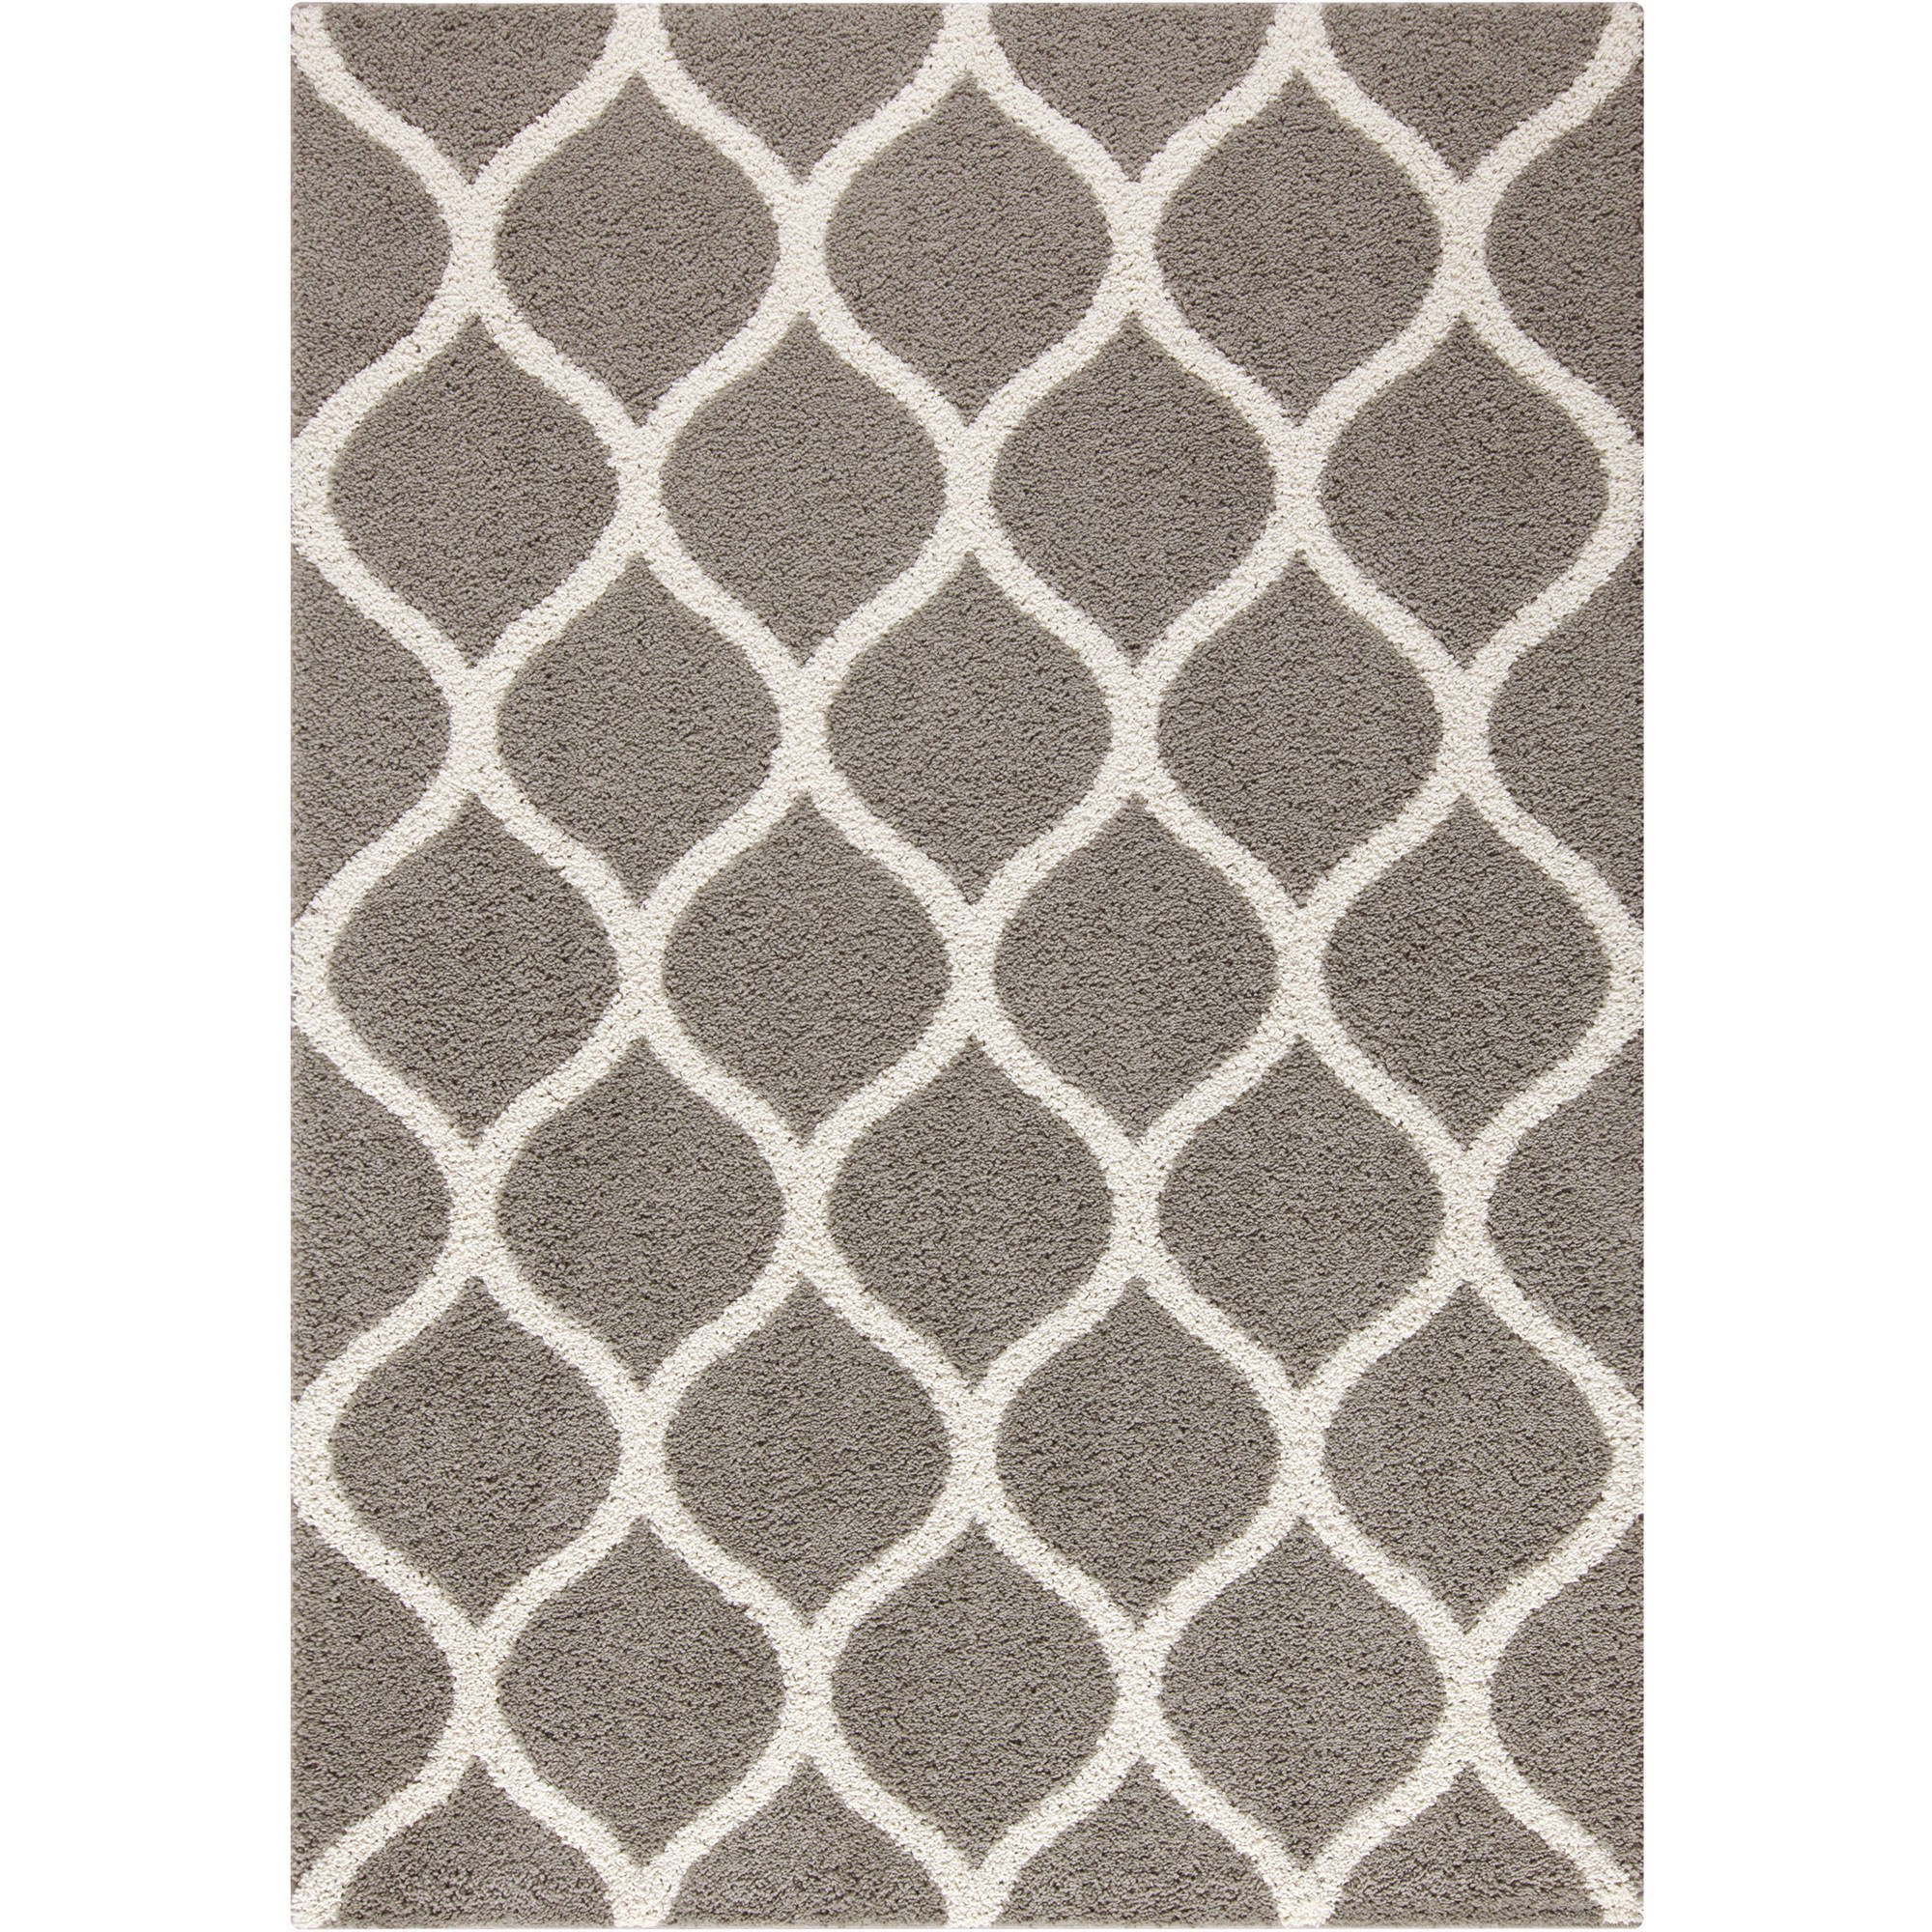 Best Mainstays Sheridan 3 Piece Area Rug Set Walmart Com With Pictures